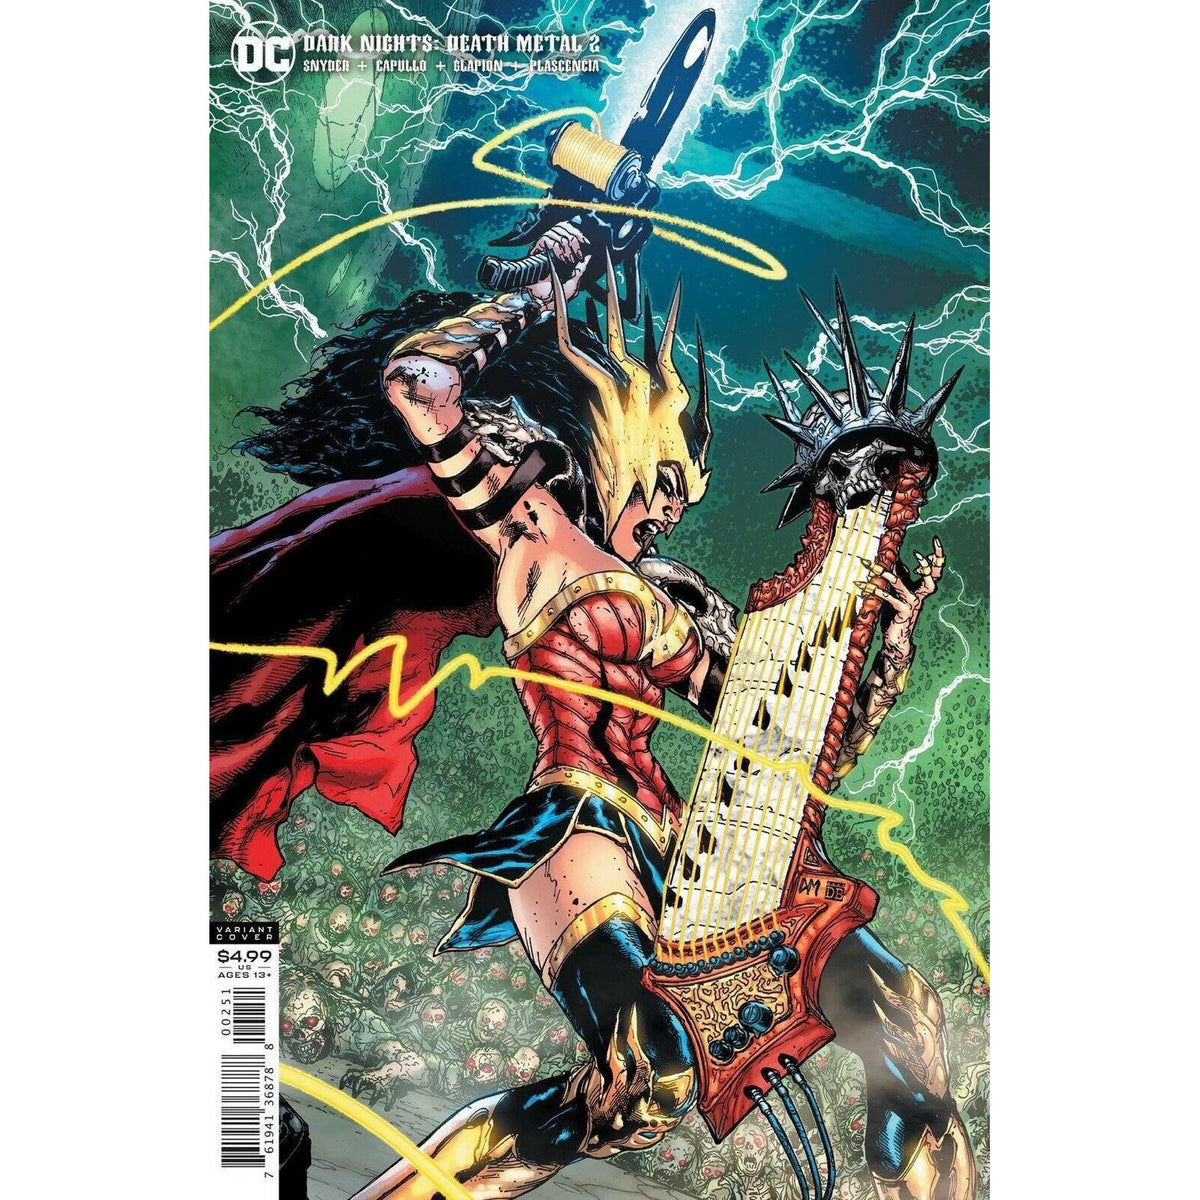 DARK NIGHTS DEATH METAL #2 (OF 6) -  1:25 DOUG MAHNKE VARIANT COVER E